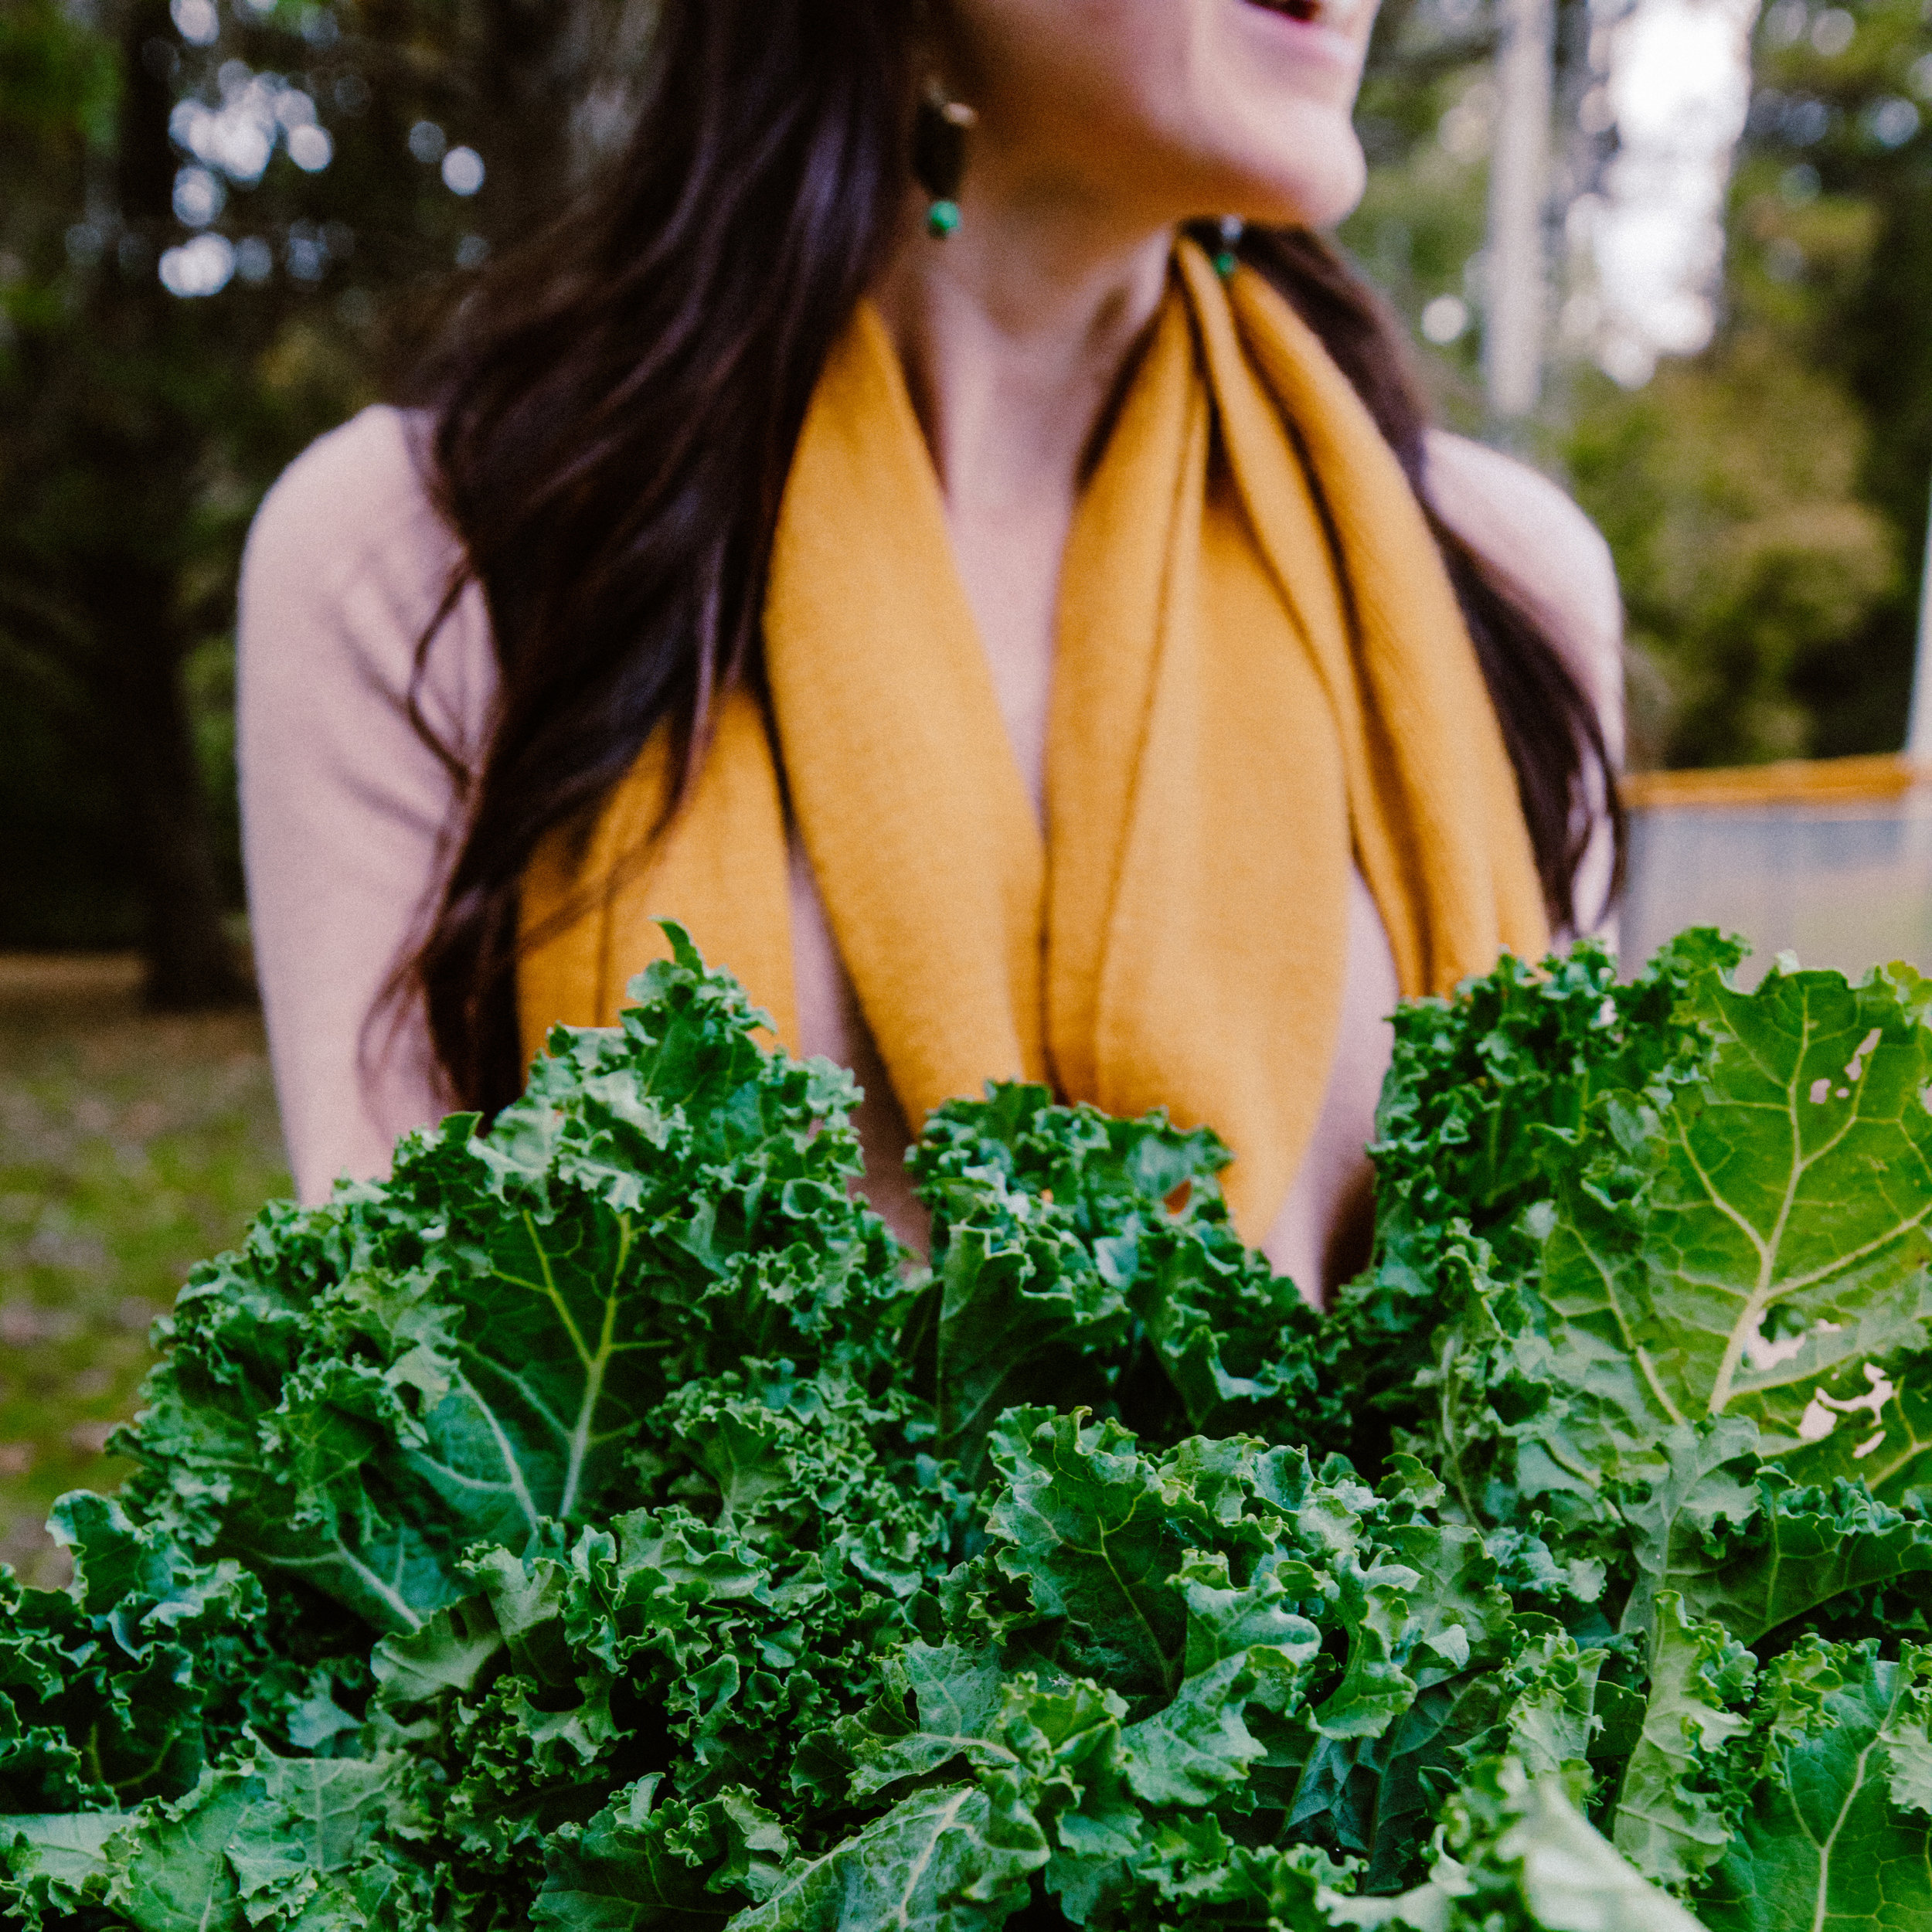 Inhale kale… - exhale delicious flavorful chips.